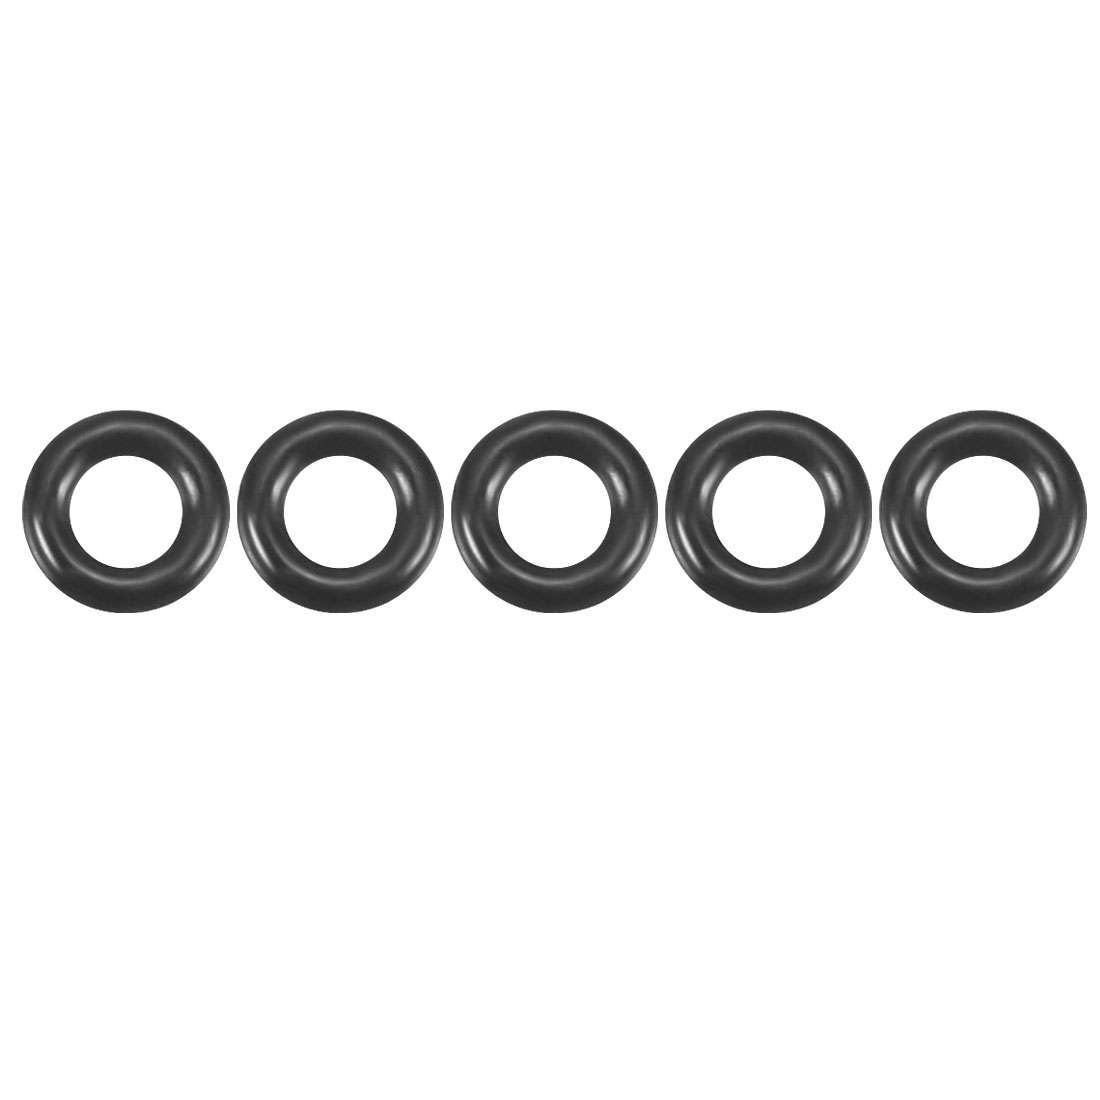 50Pcs Black 3mm x 0.8mm Nitrile Rubber O Ring NBR Oil Sealing Grommets